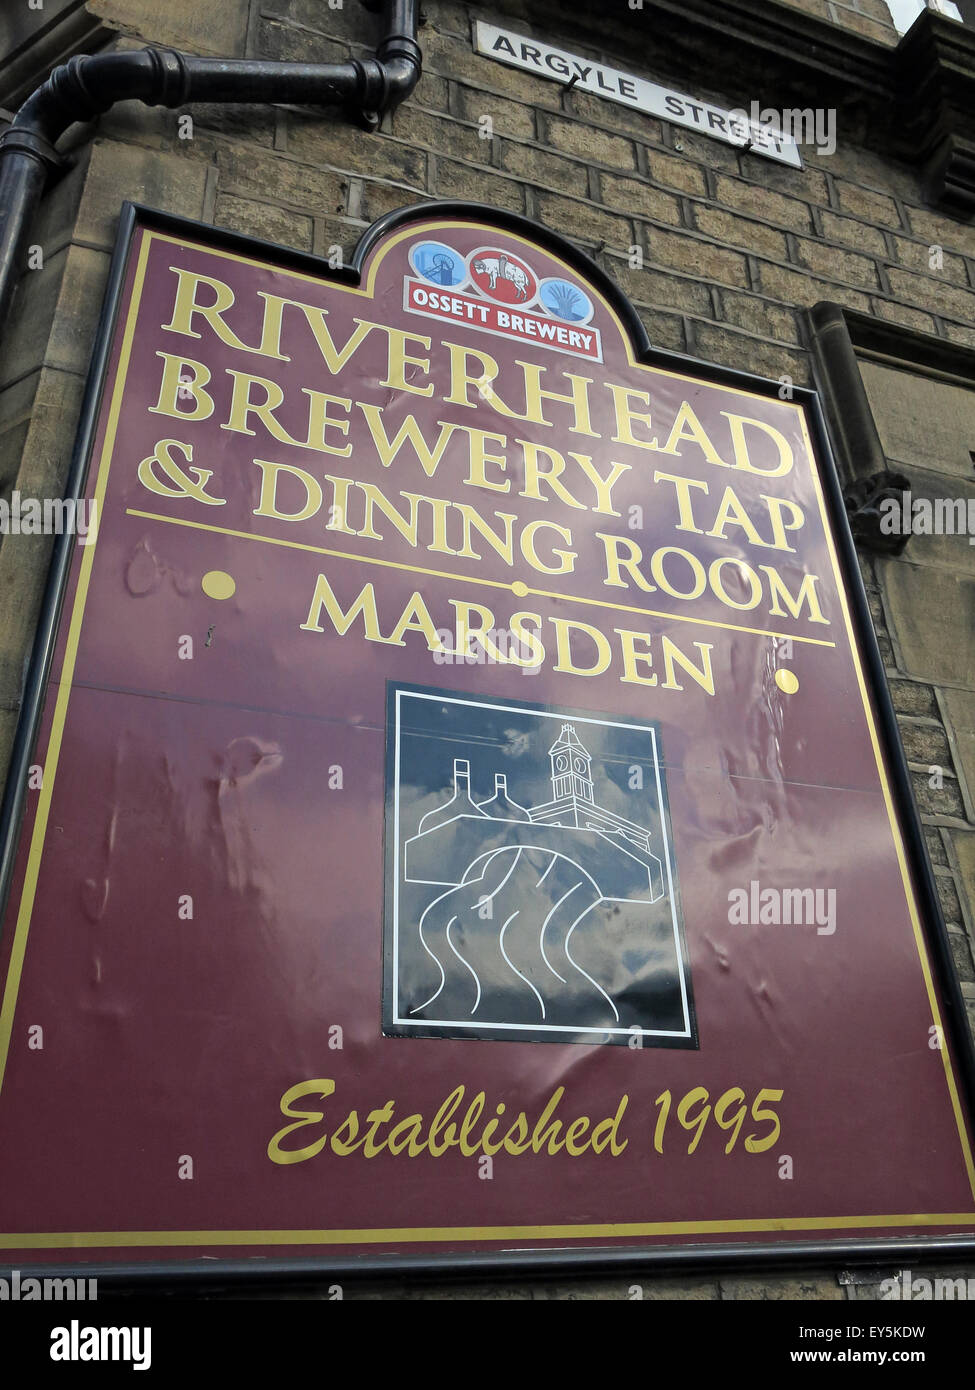 transpennine,trans,pennine,train,ale,real.realale,sign,river,head,England,UK,on,the,CAMRA,aletrain,route,1995,village,town,brewer,Kirklees,Council,borough,GoTonySmith,Buy Pictures of,Buy Images Of